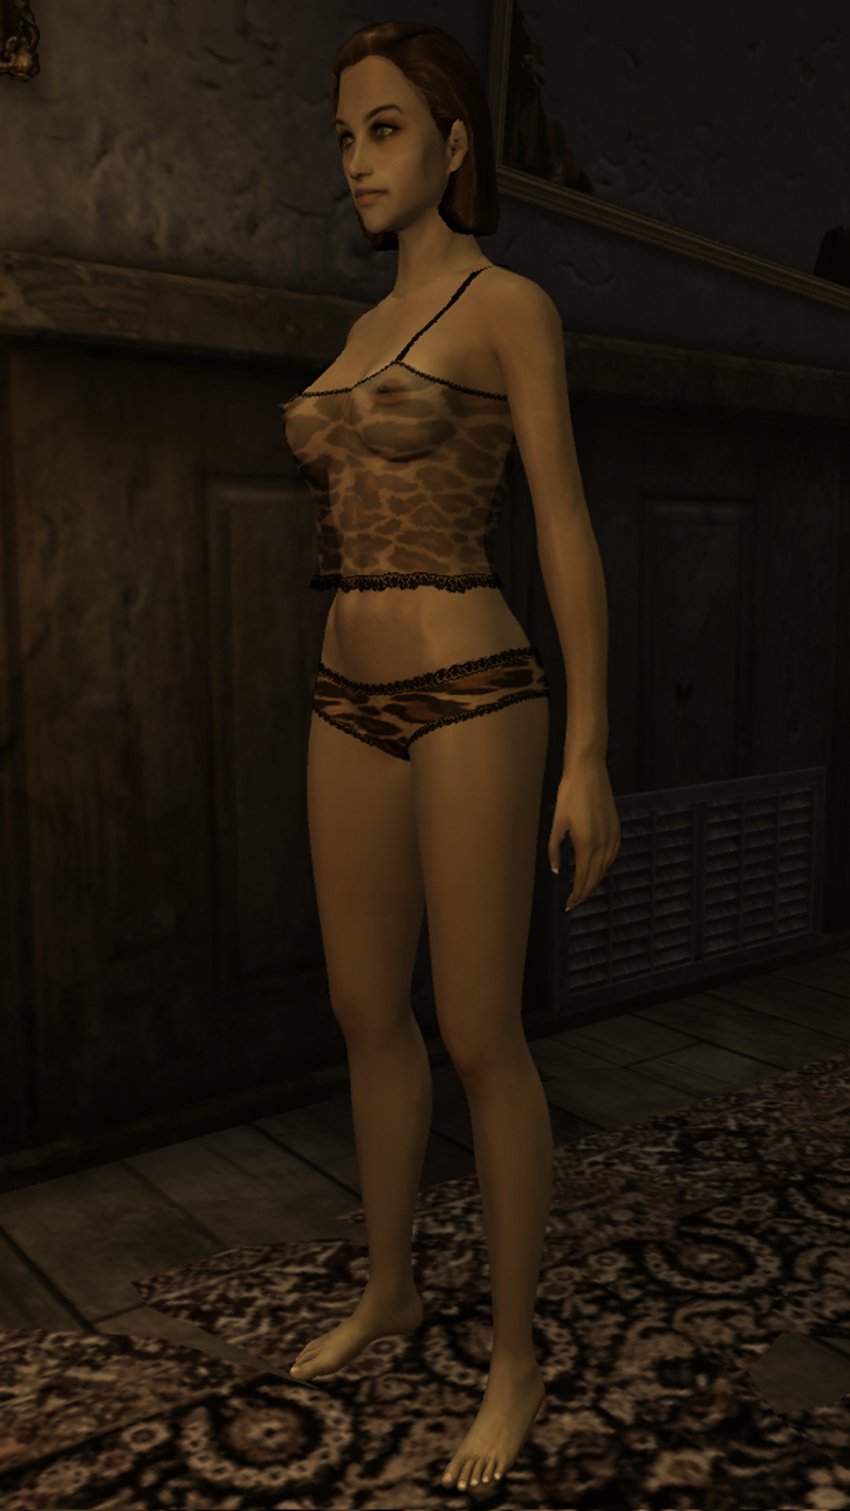 new vegas fallout Great mouse detective miss kitty